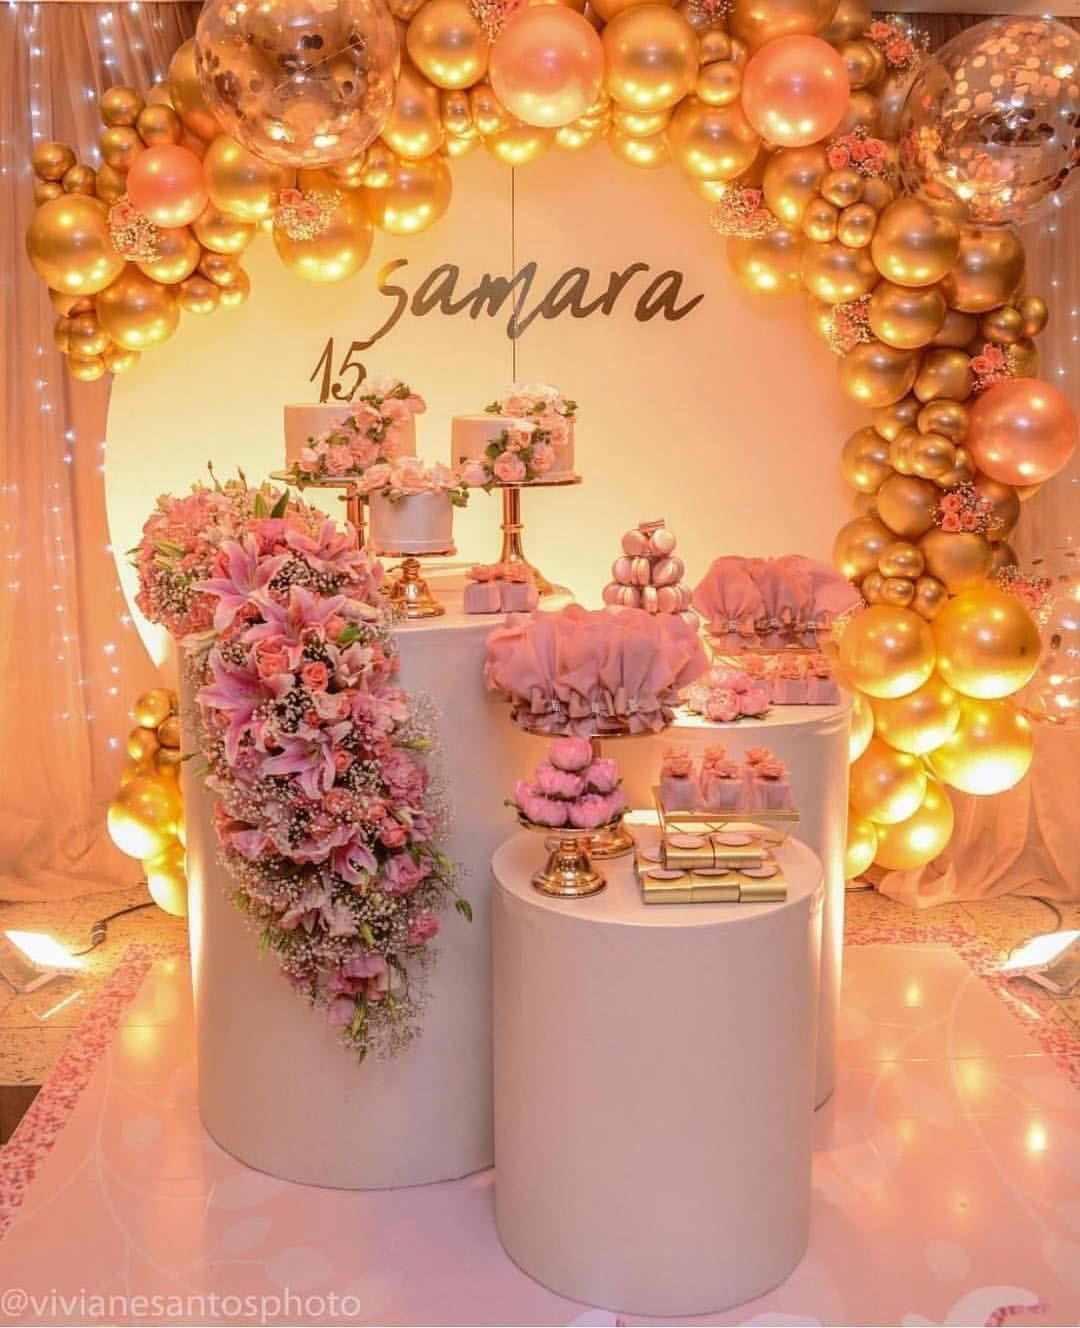 Chivalrous tabulated quinceanera party themes my latest blog post #quinceaneraparty